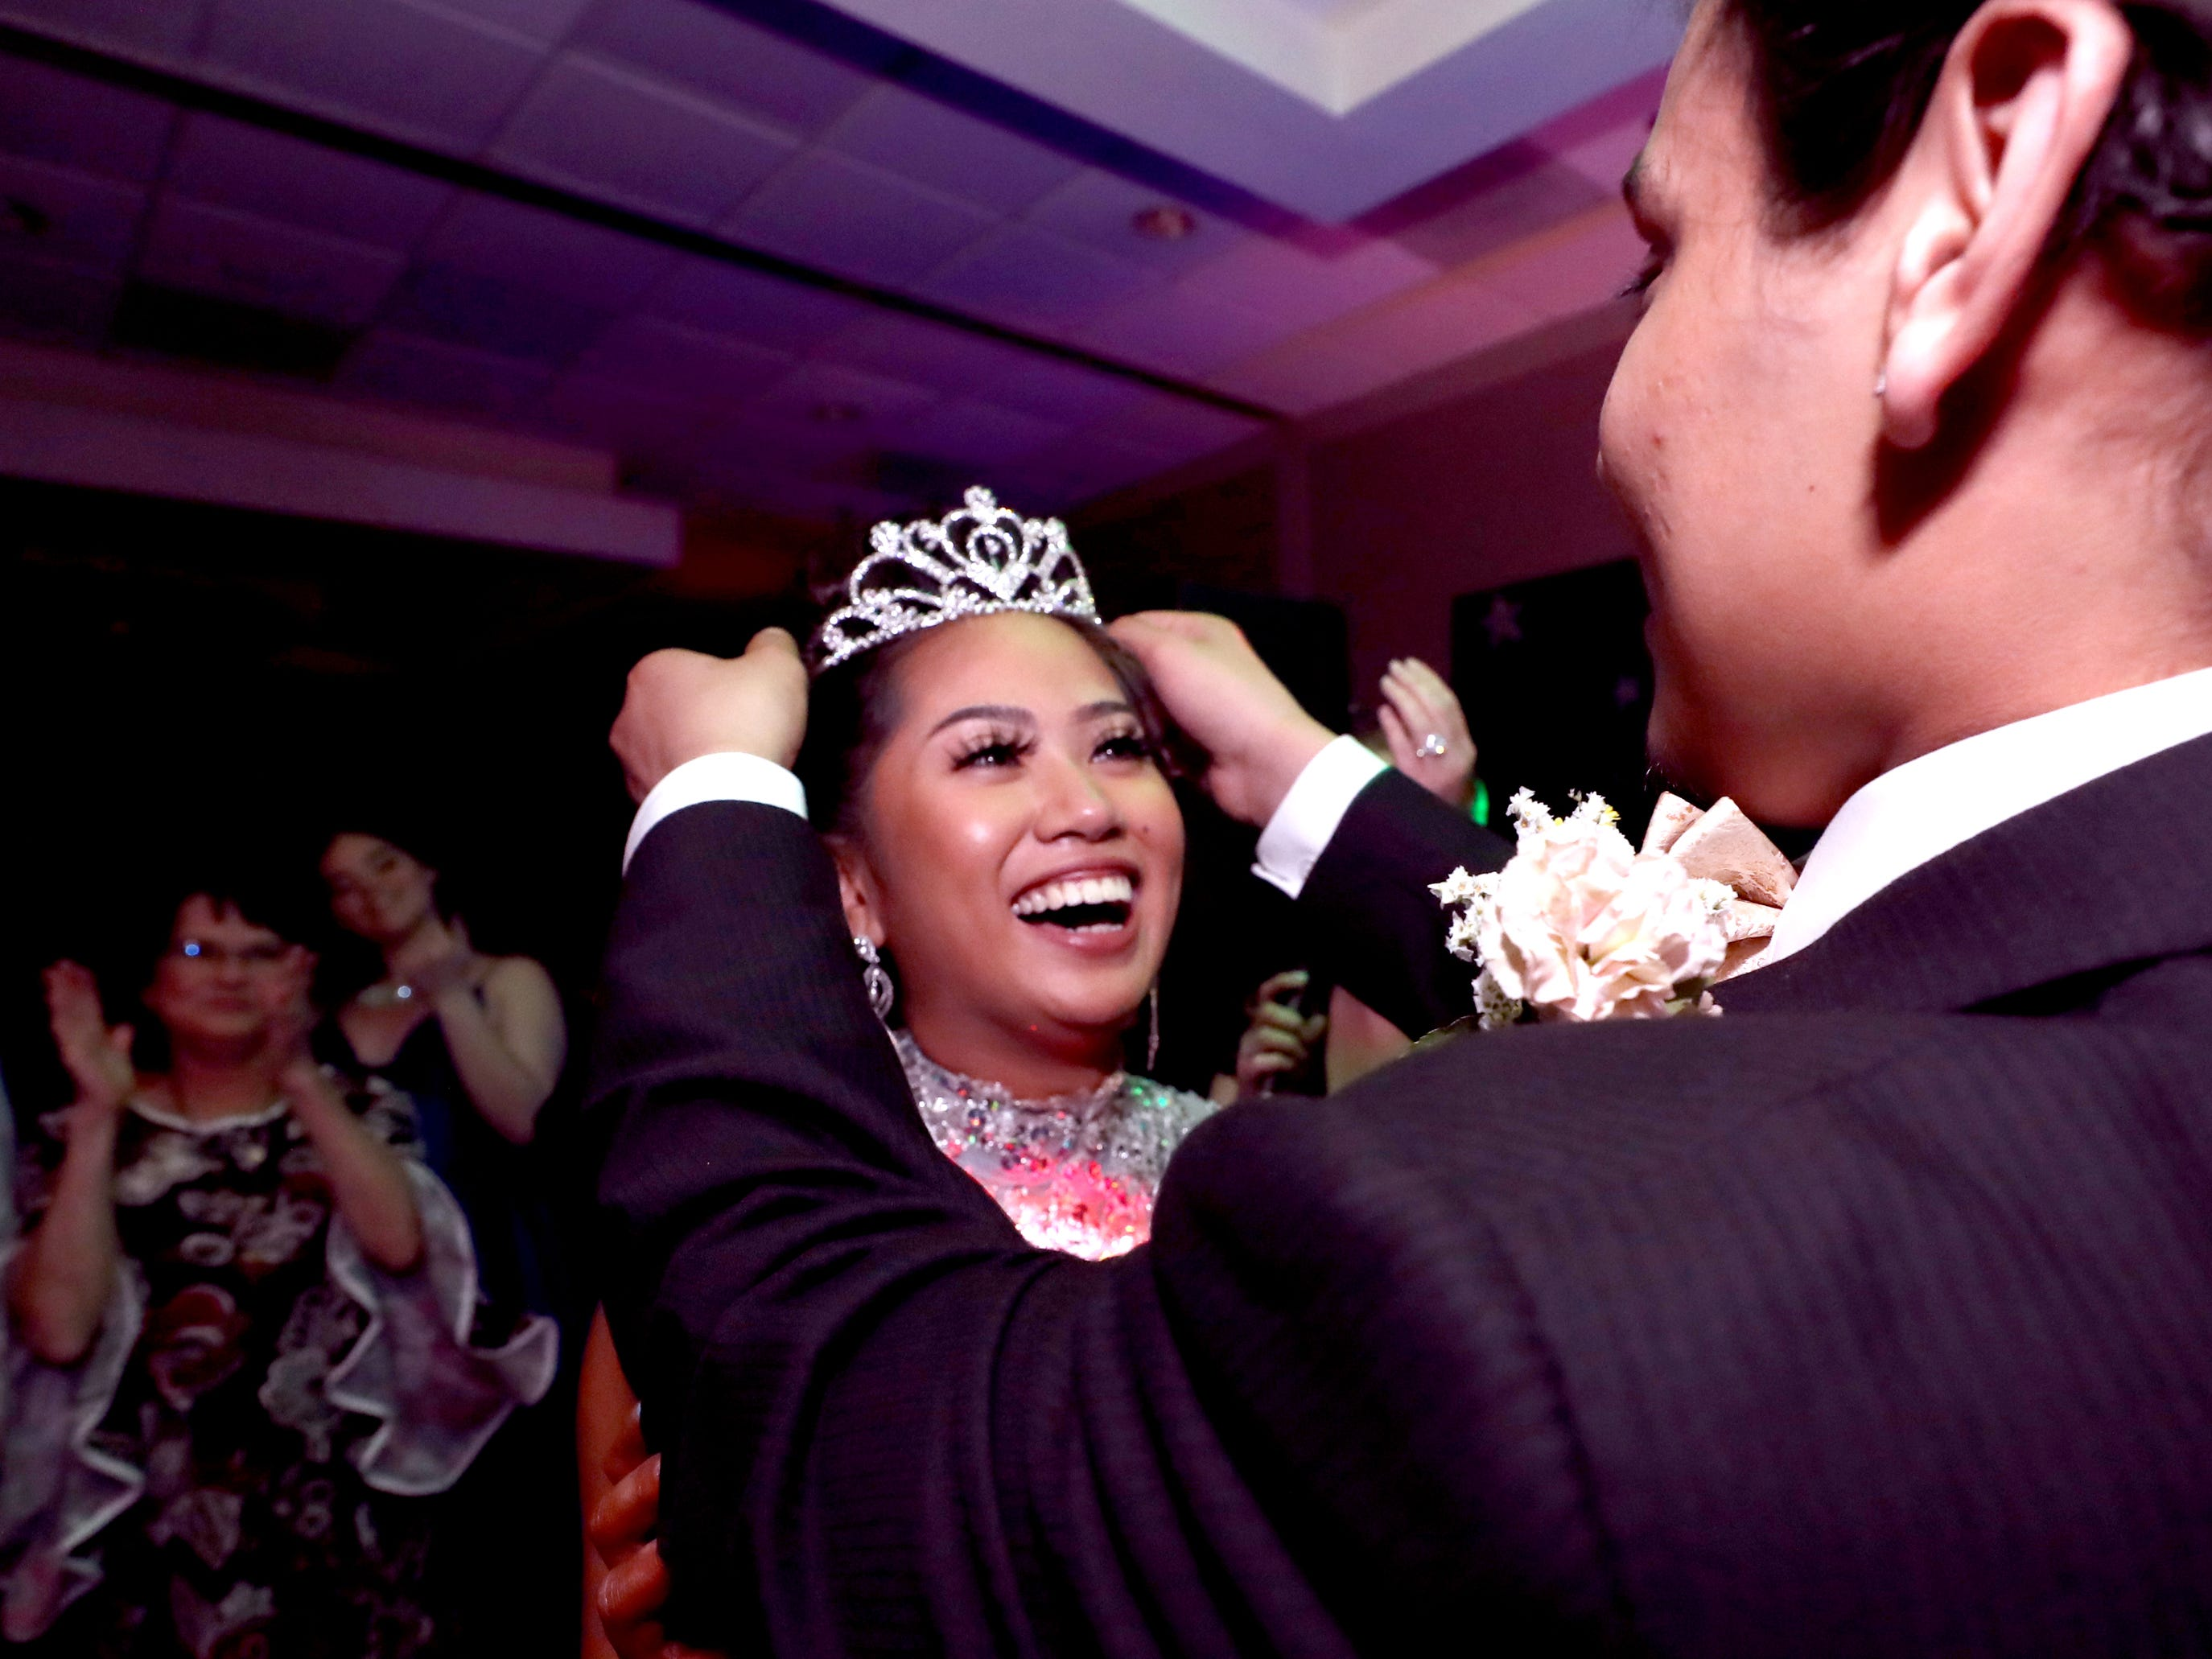 Prom King Diego Valencia crowns Anna Kounboribounsak Prom Queen at Holloway's prom at the DoubleTree on Thursday April 18, 2019.